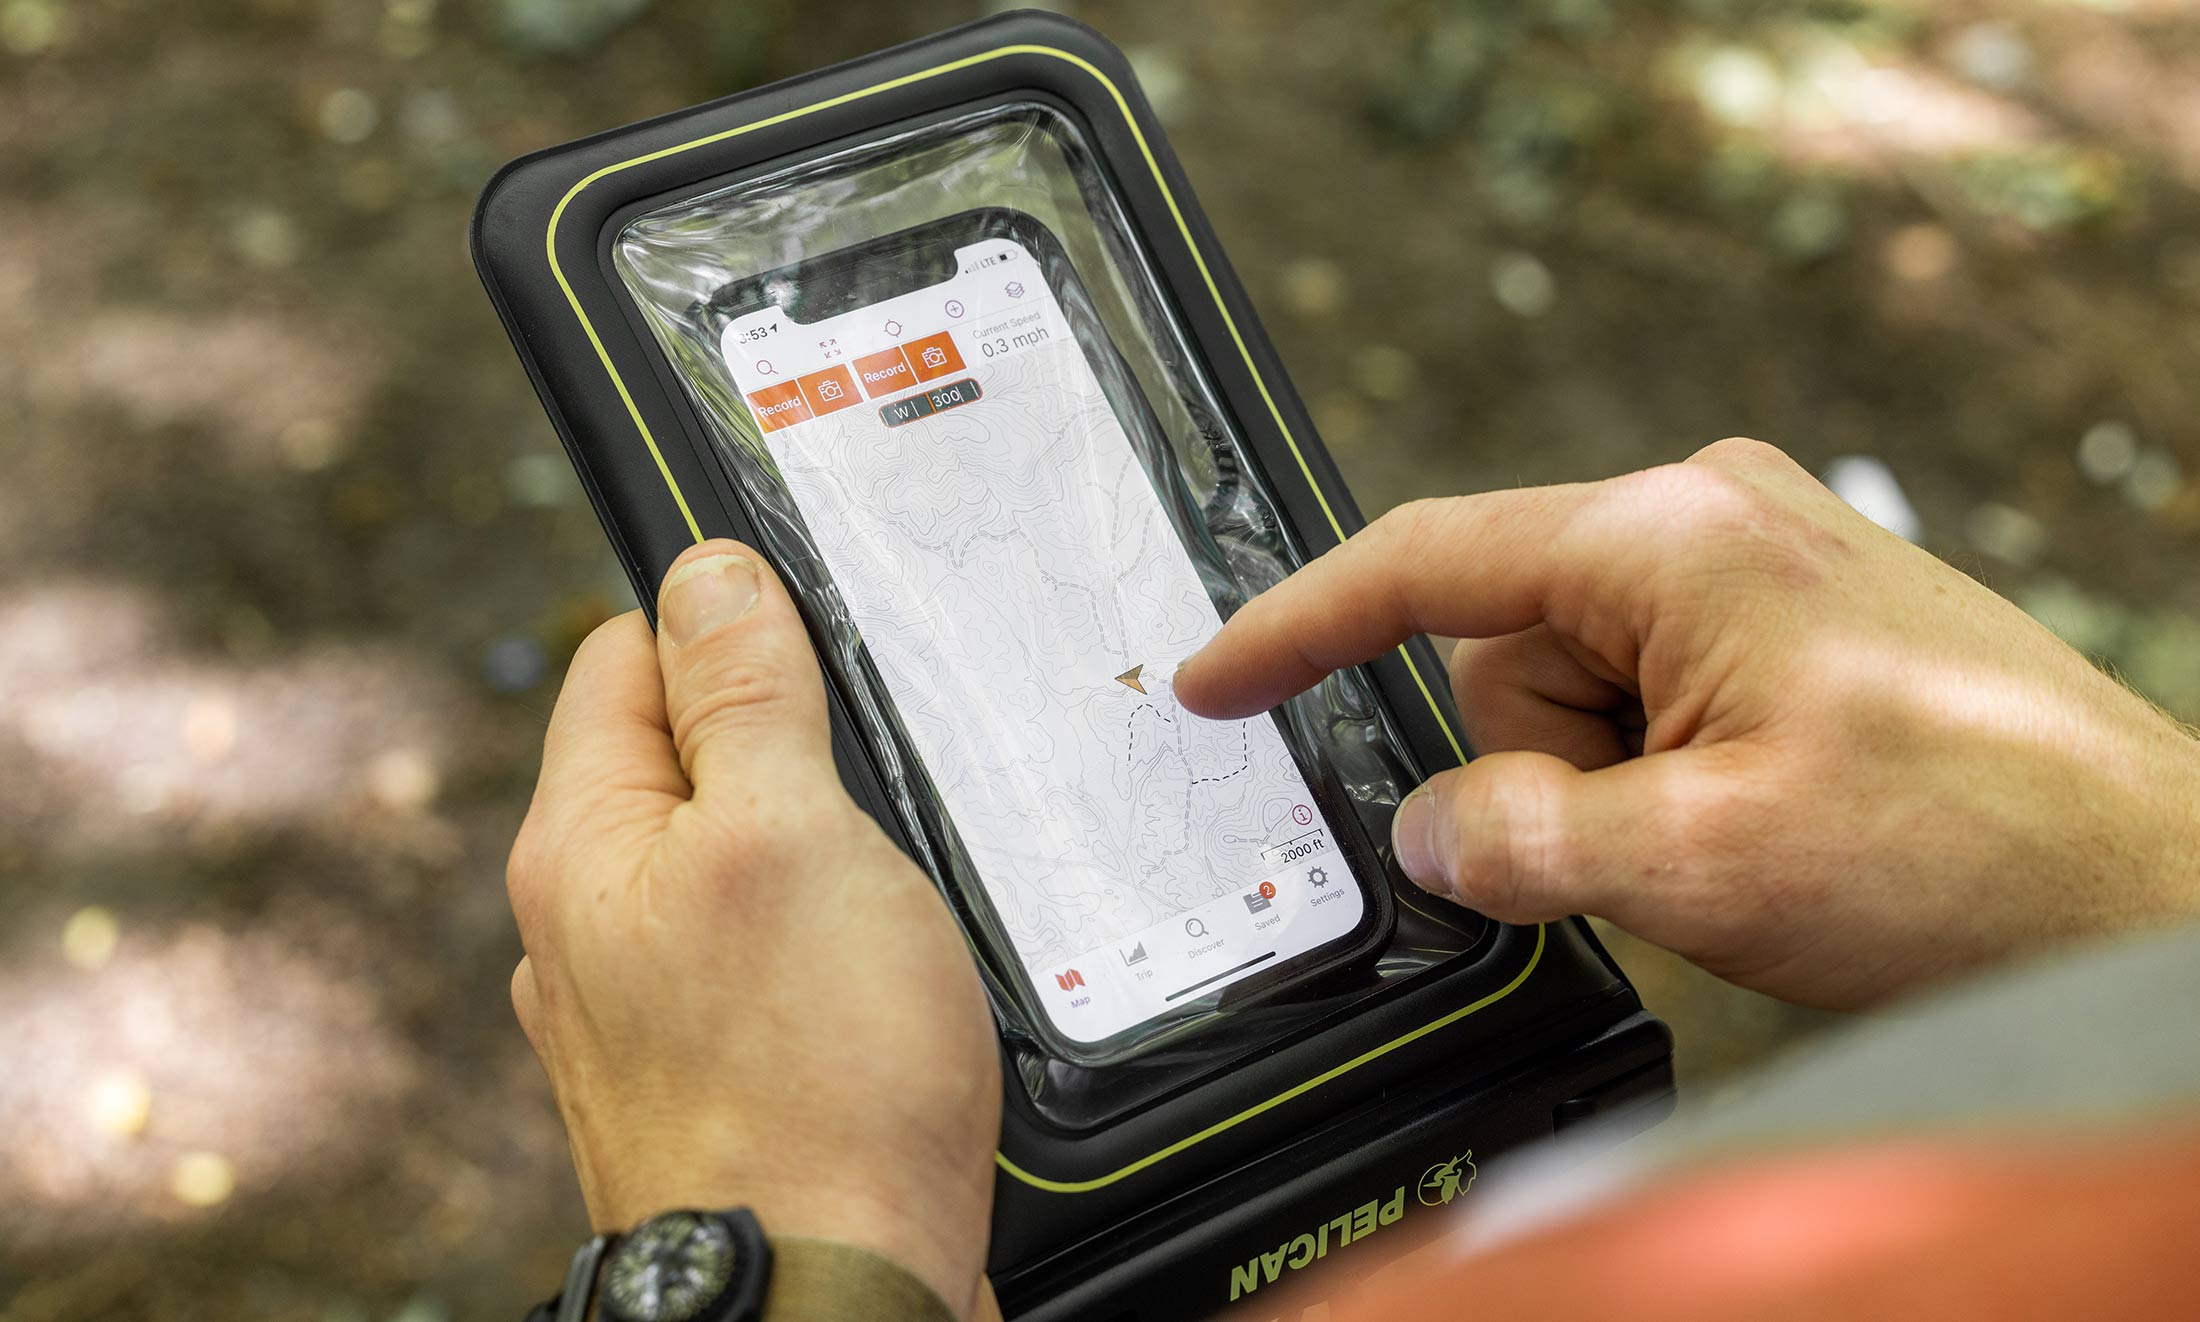 Using phone with waterproof pouch